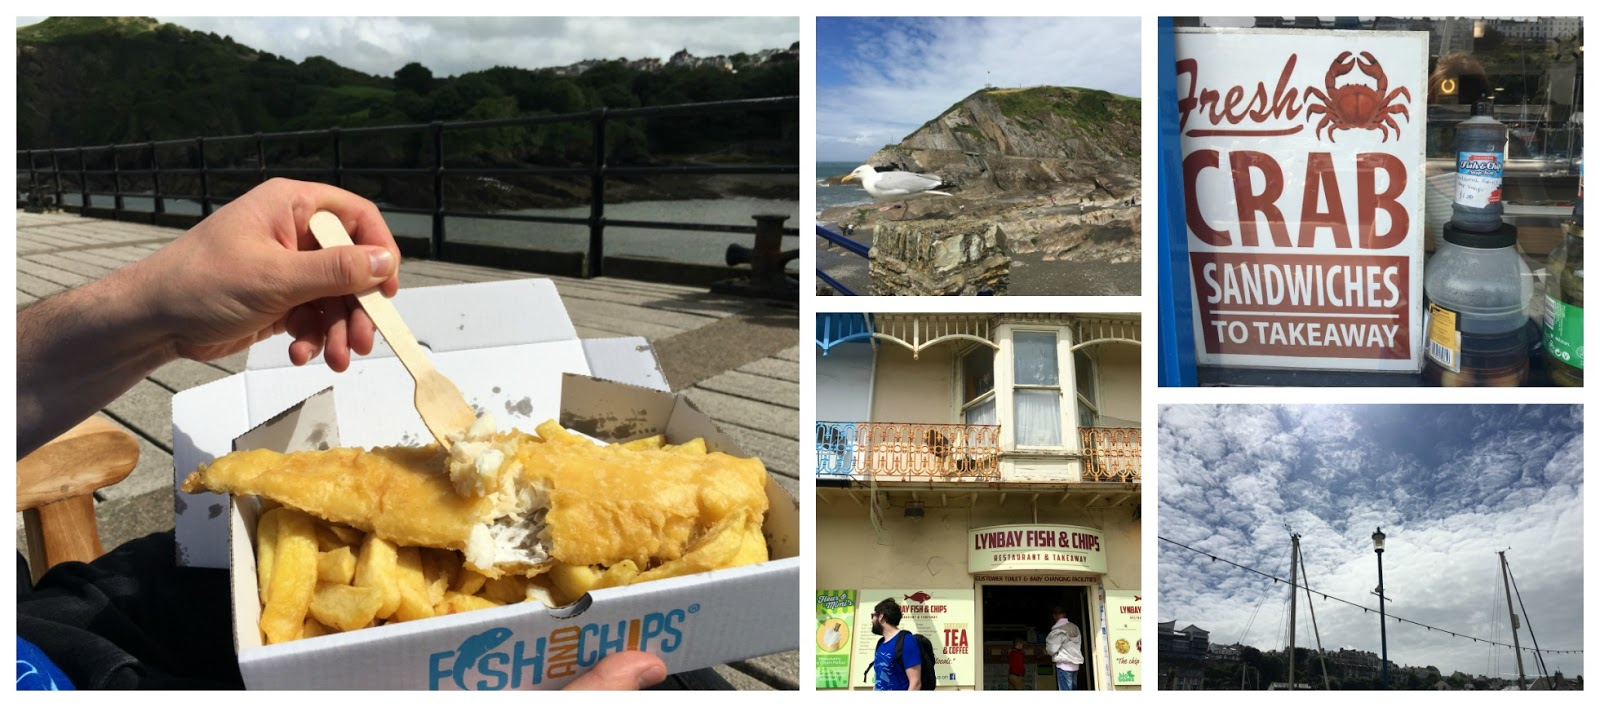 fish and chips in Ilfracombe